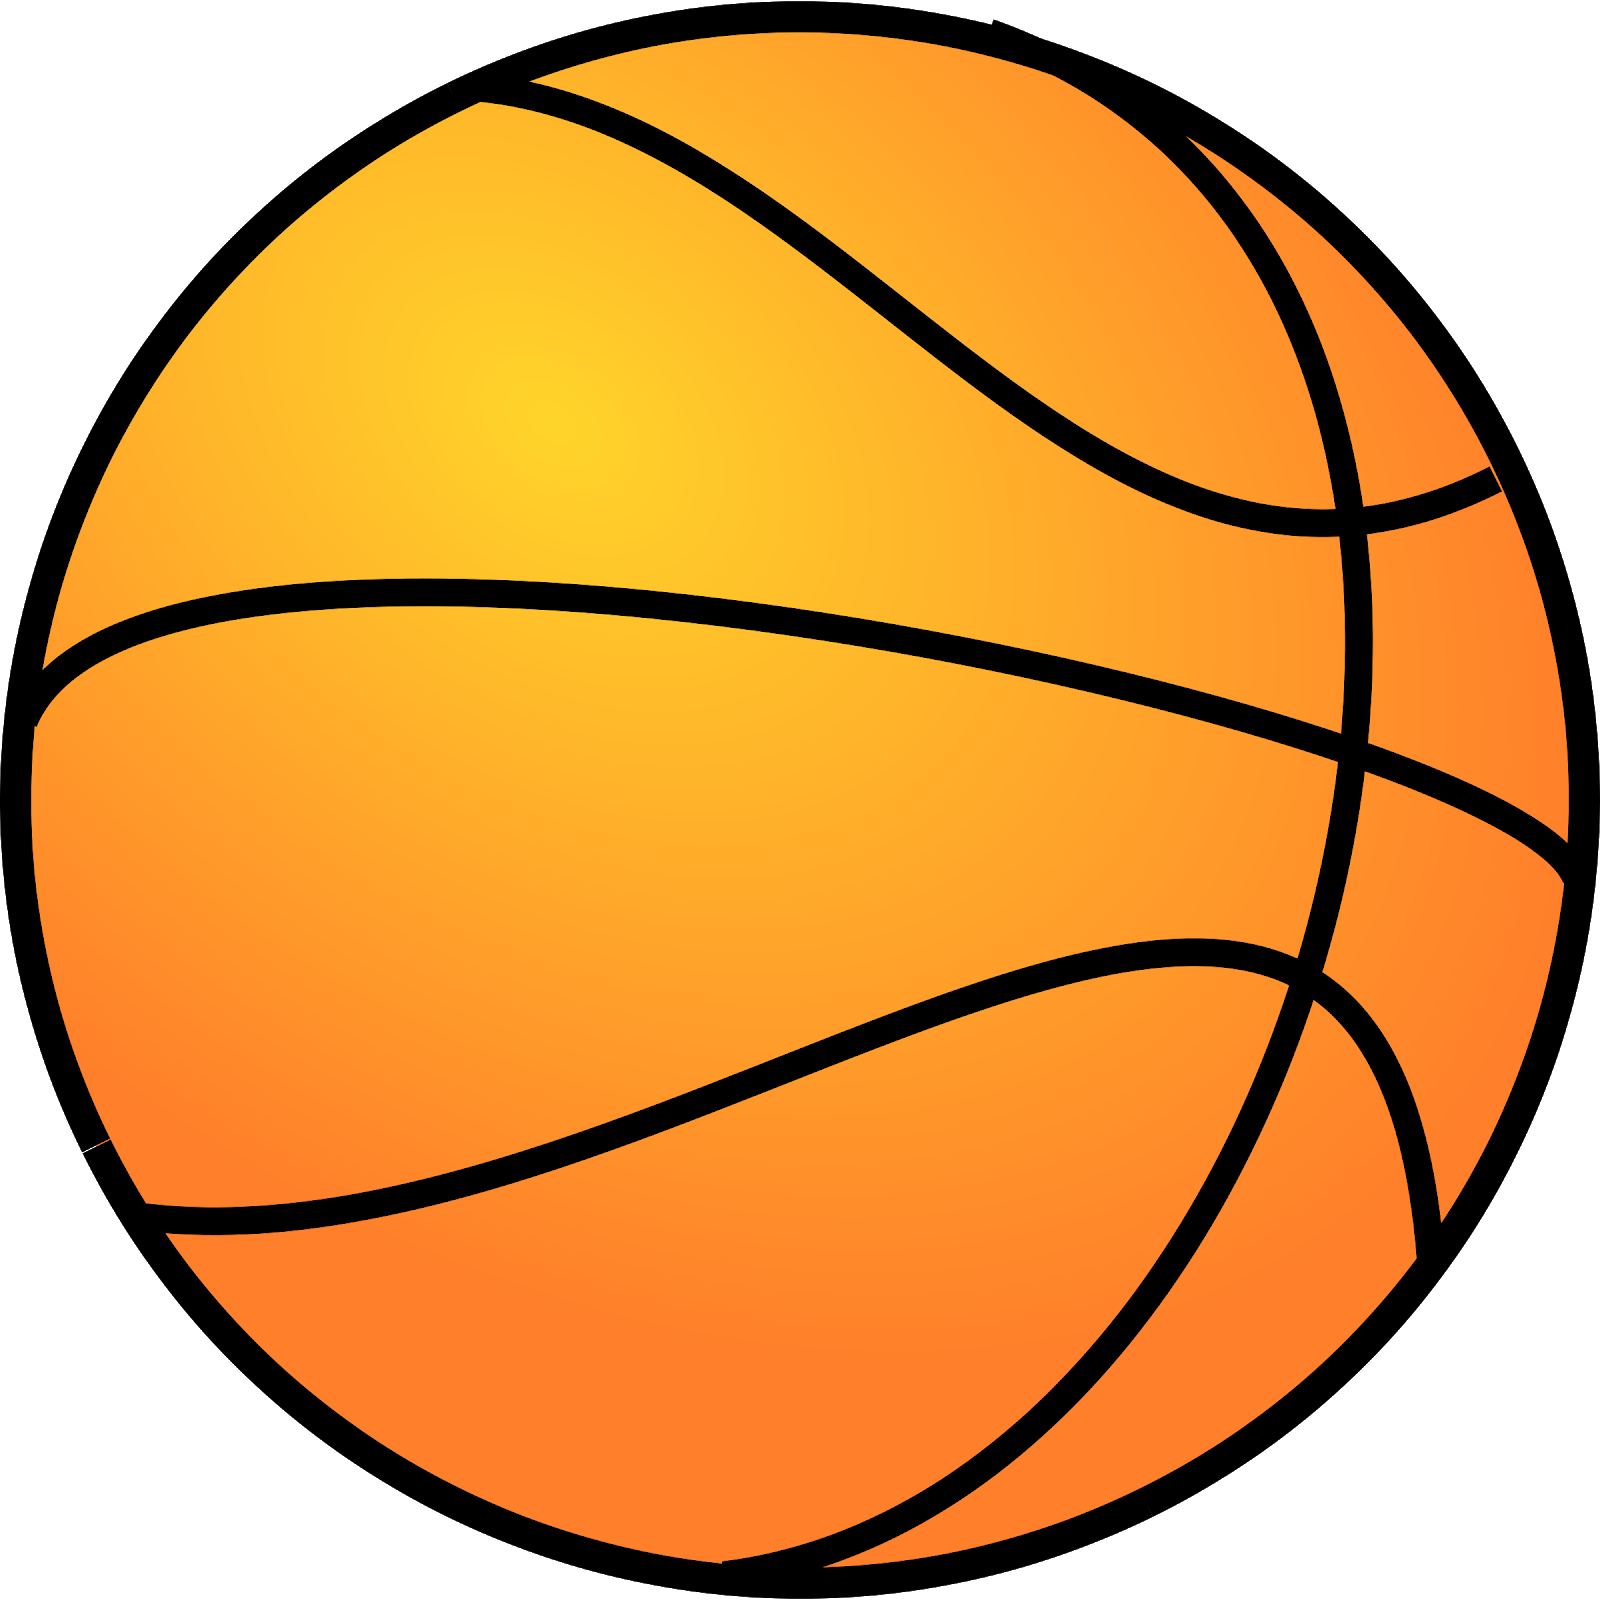 Basketball in motion clipart clip art royalty free stock While You're Making Other Plans...: August 2015 clip art royalty free stock